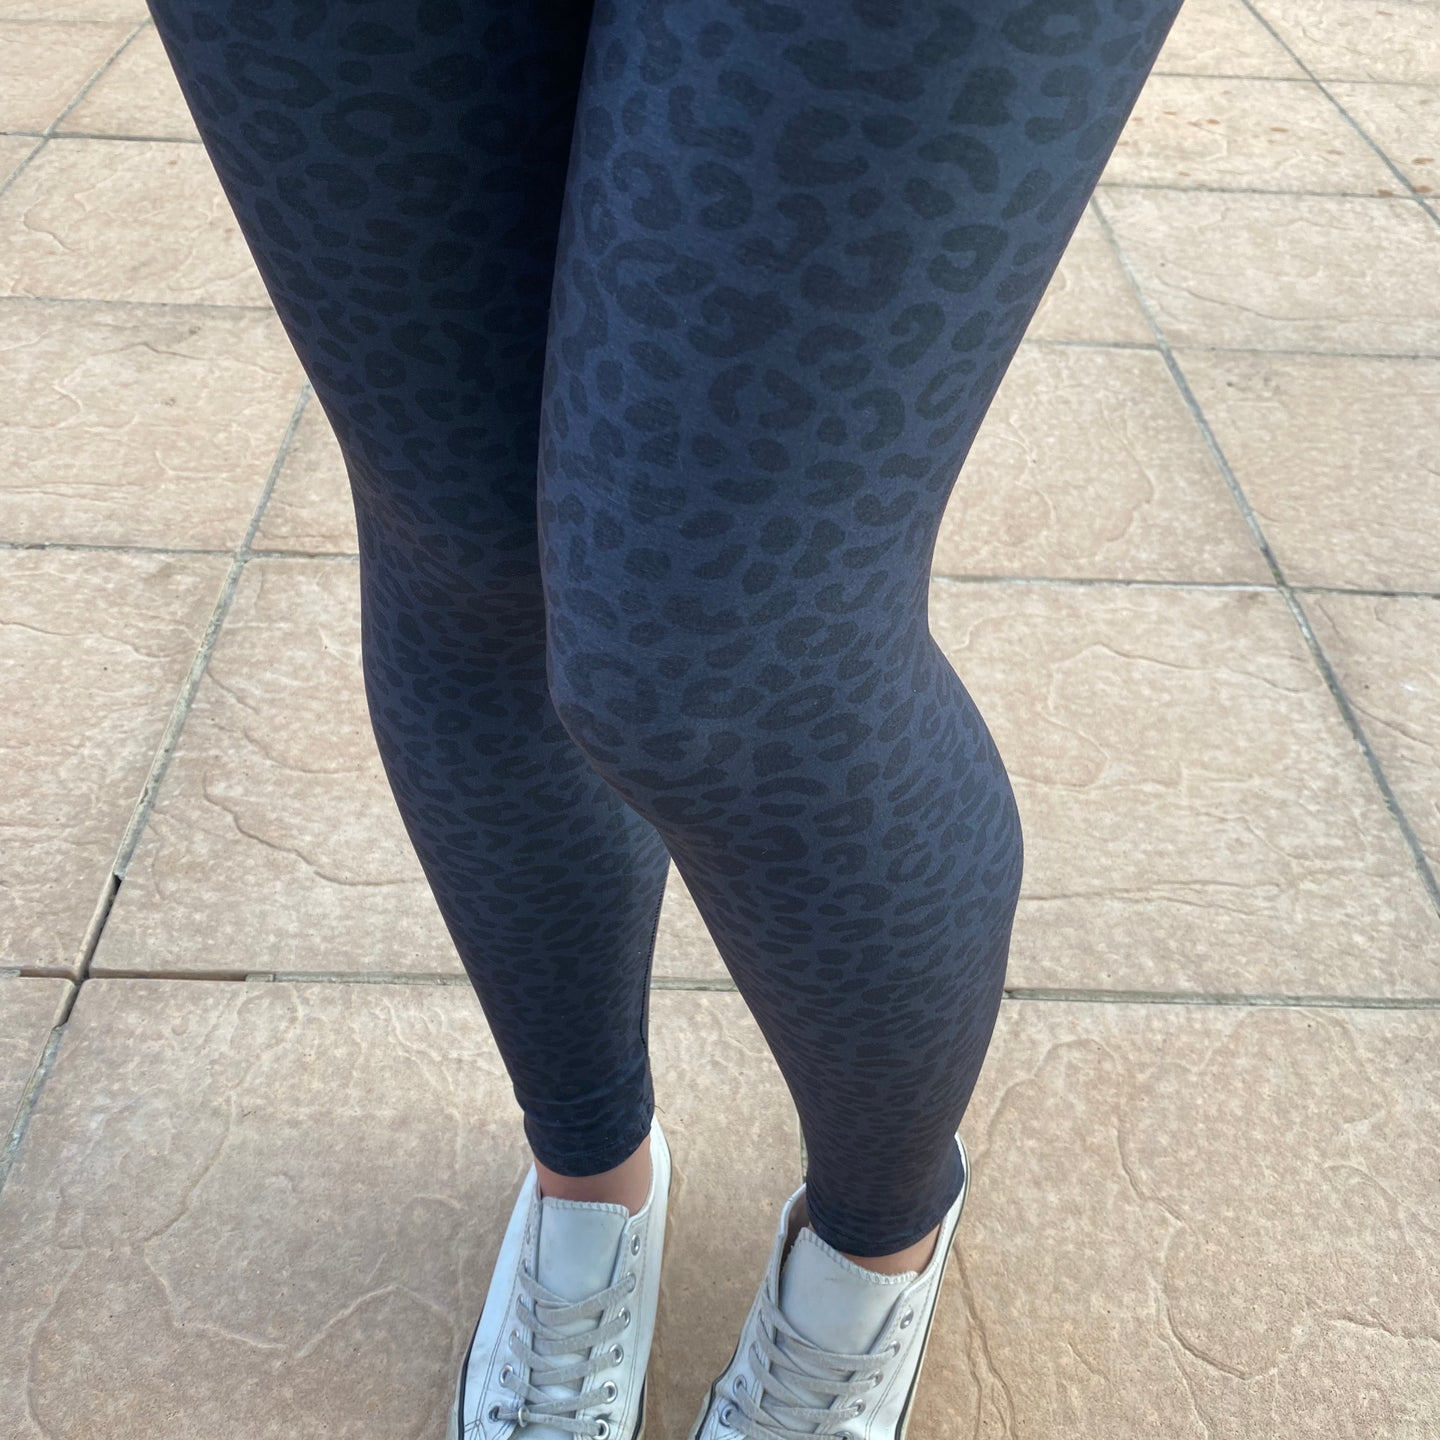 Luesque Peaceful Leopard Casualwear Leggings